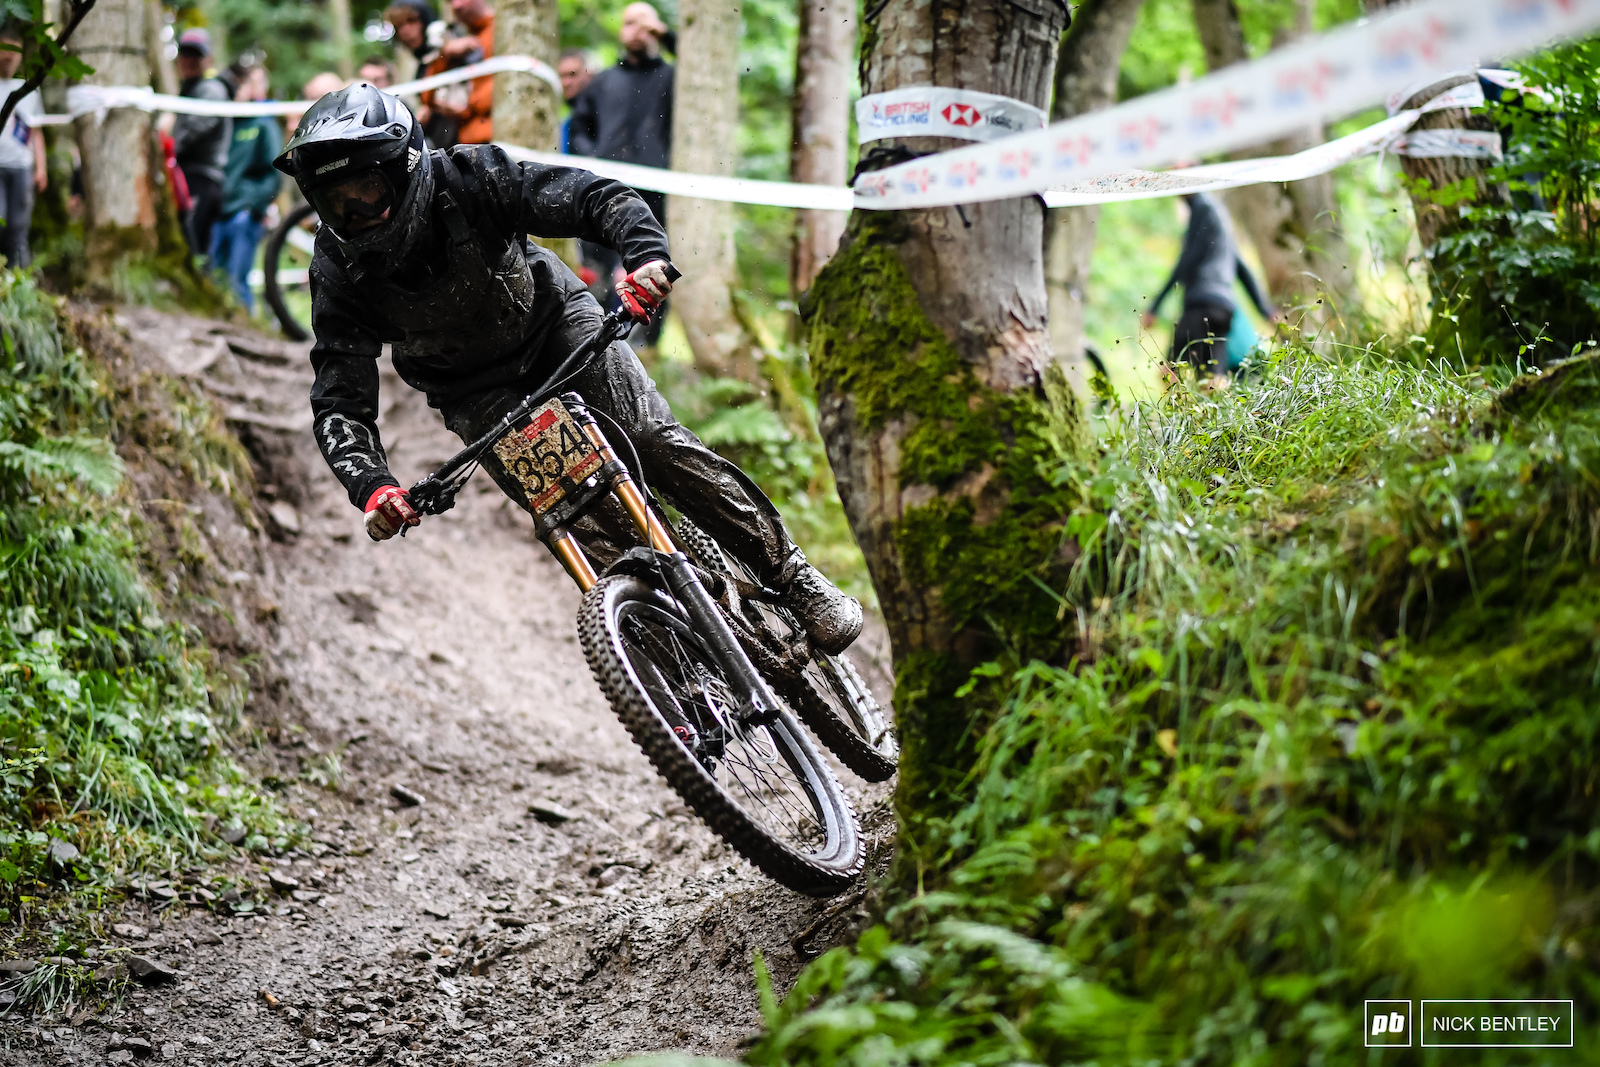 Oakley Haines carving through the mud.